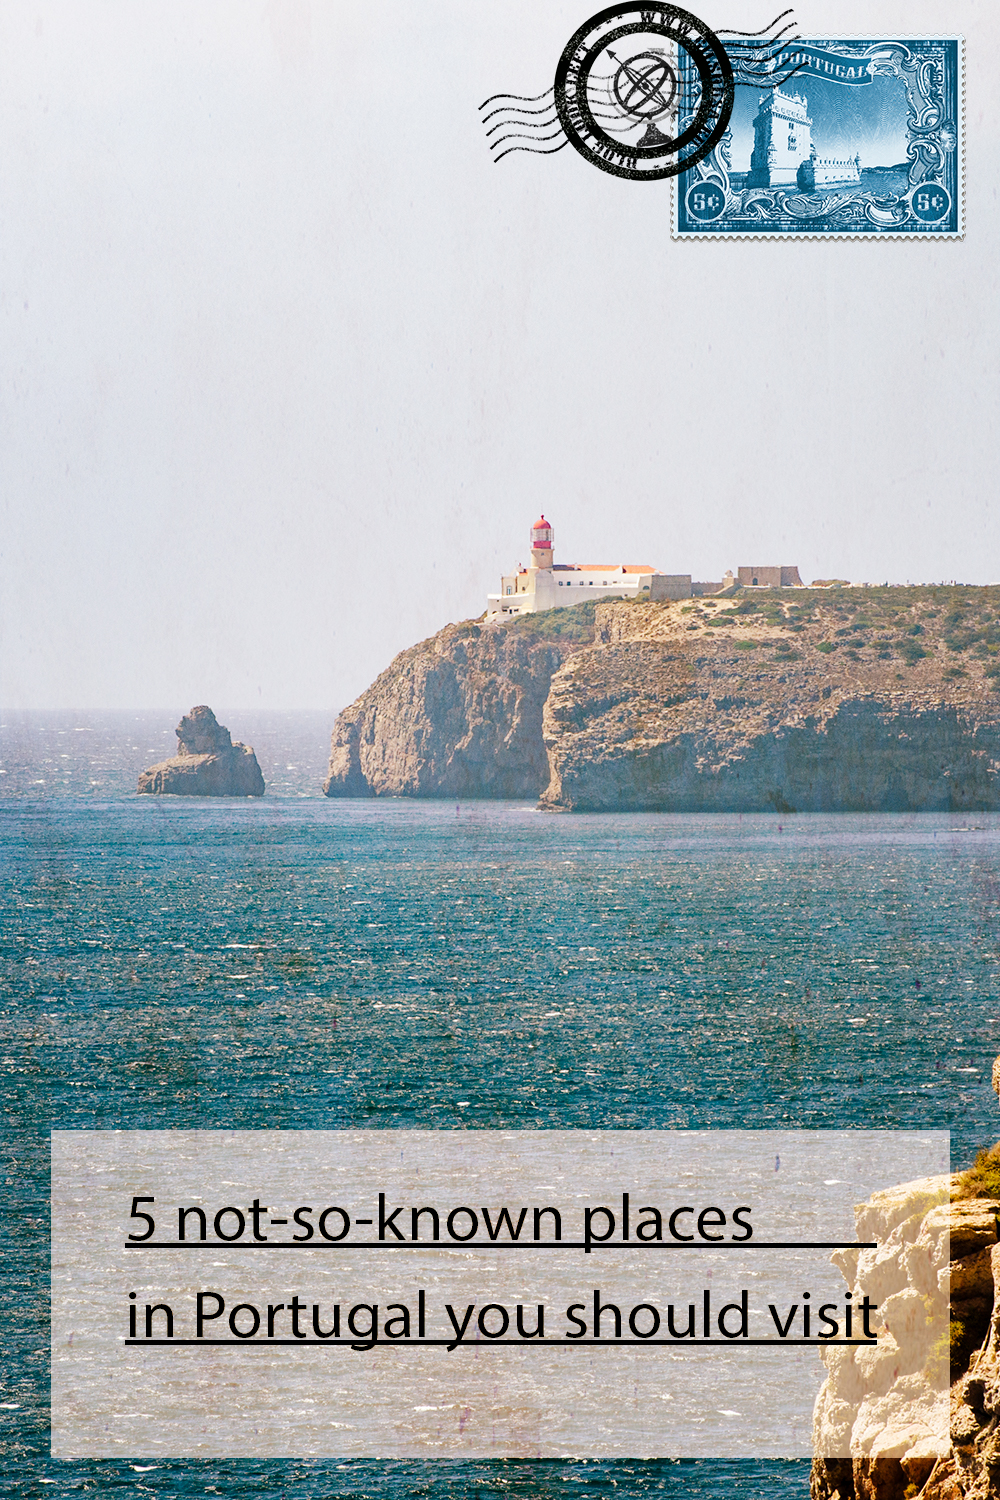 Ponta de Sagres - 5 not-so-known places in Portugal you should visit one day!